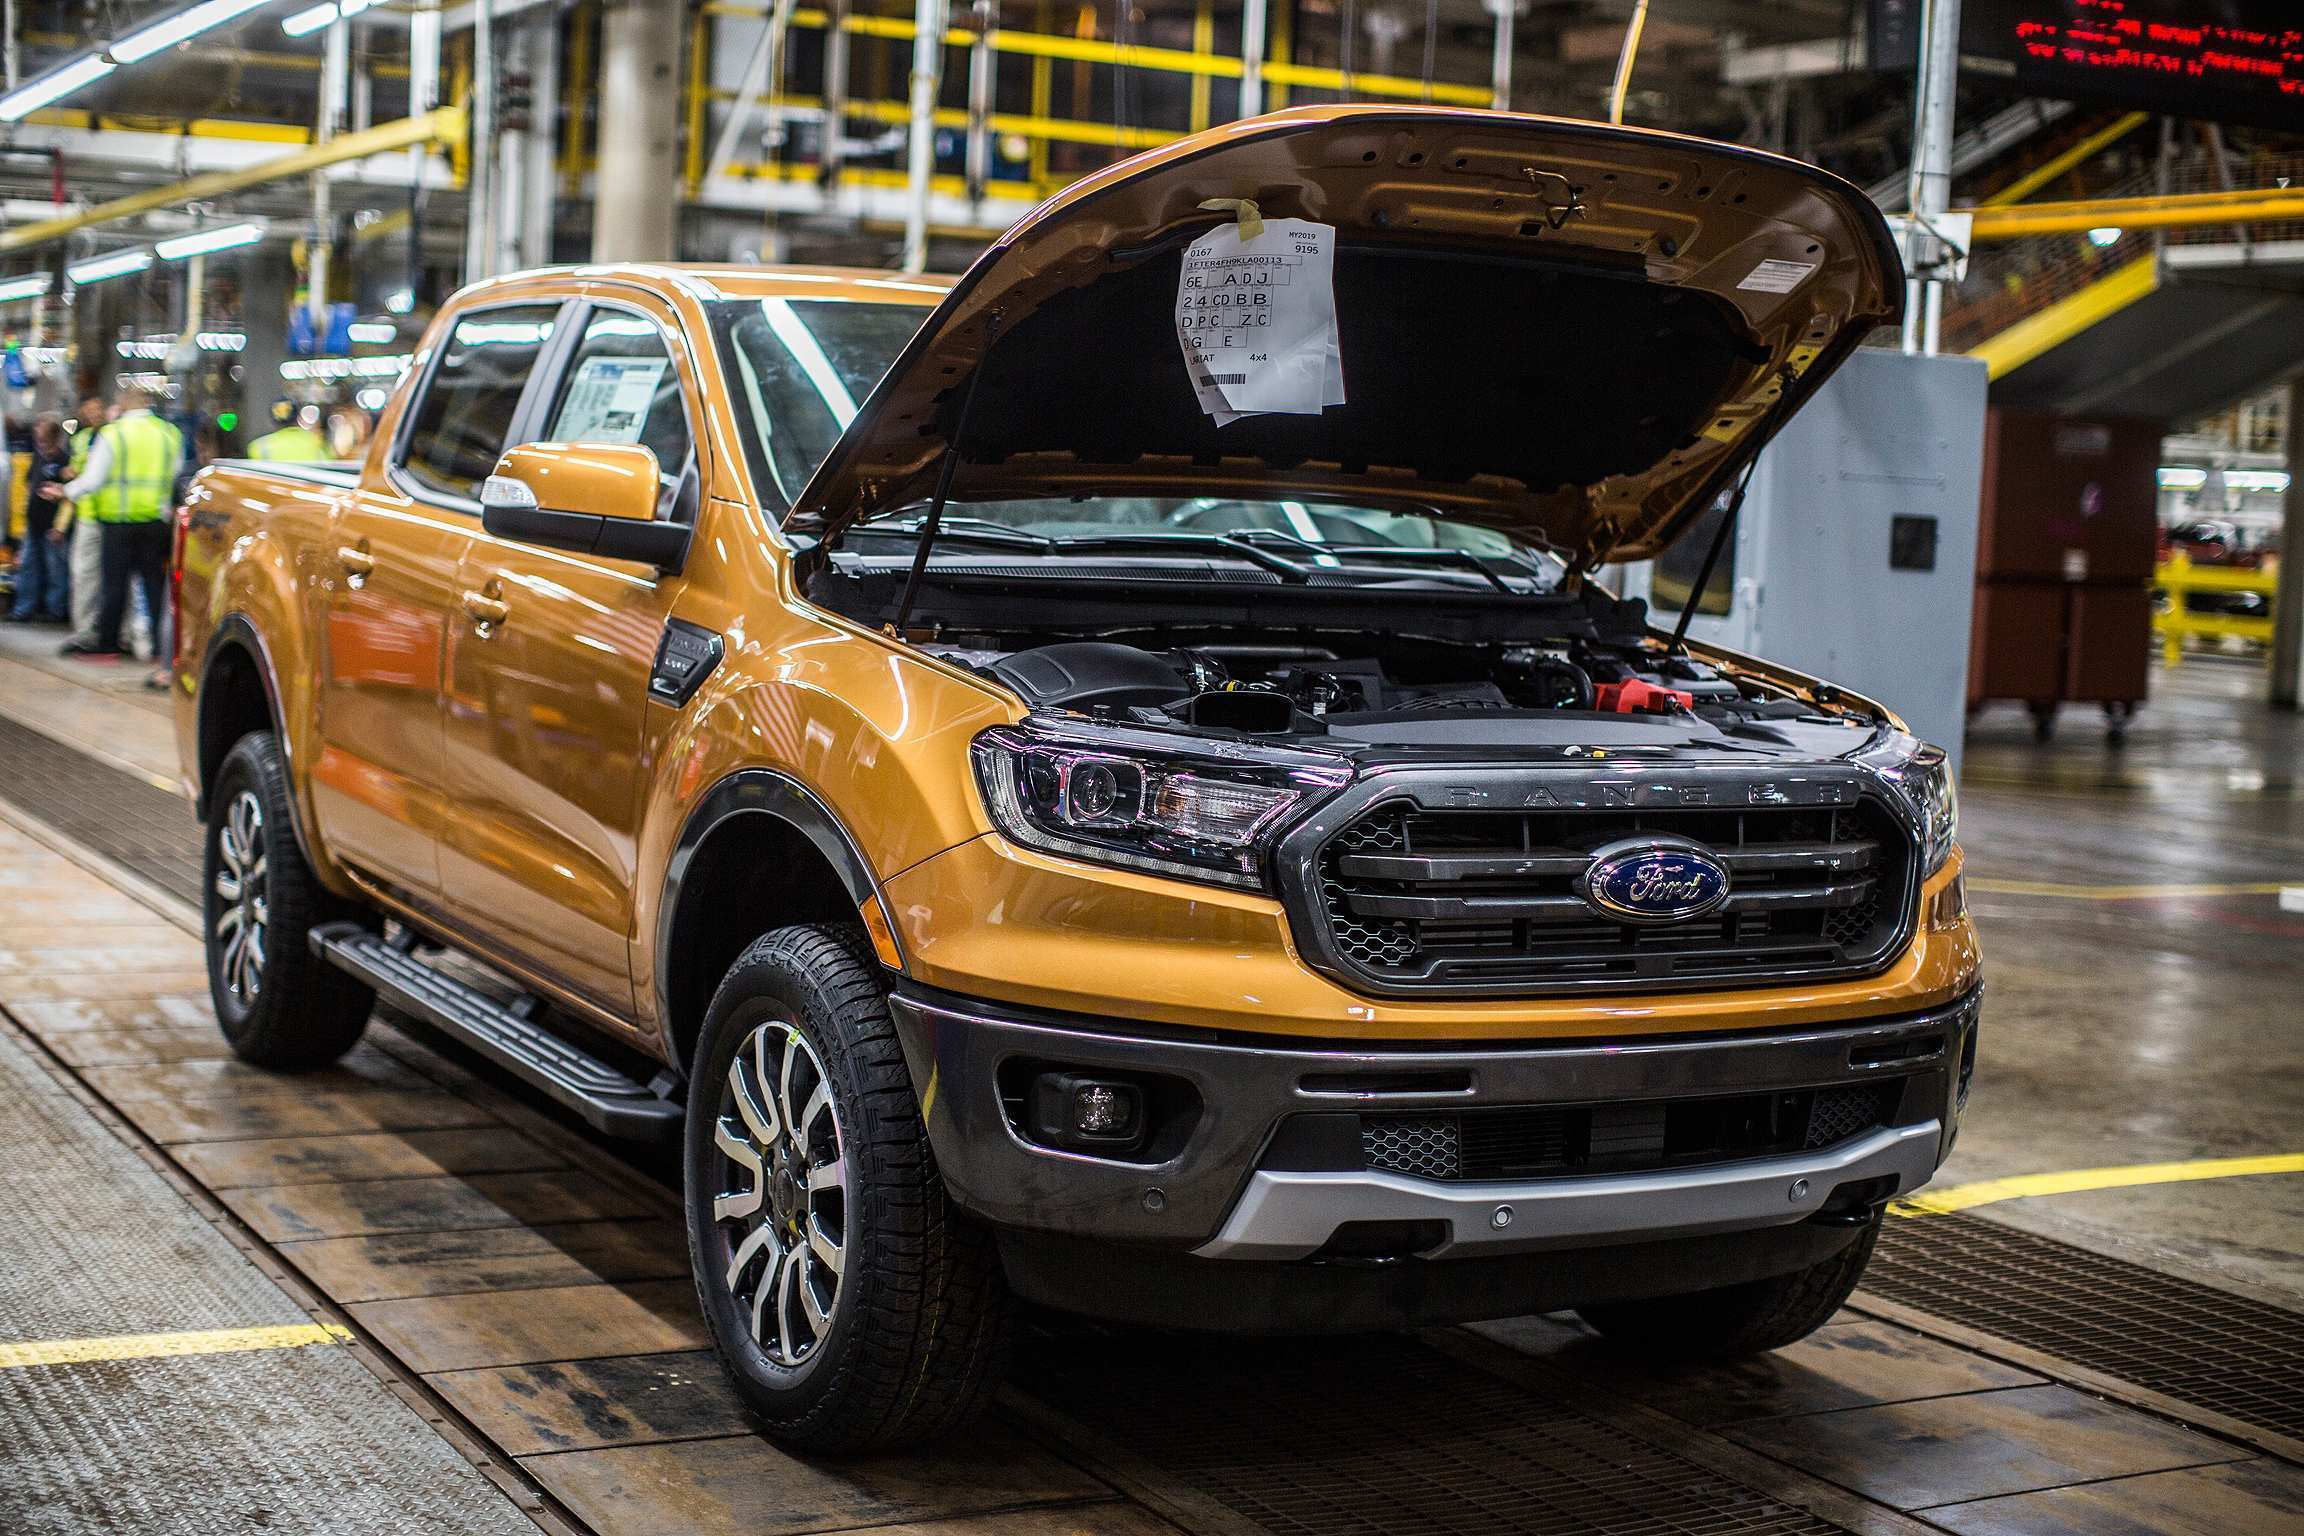 31 The 2020 Ford Ranger Vs BMW Canyon Photos with 2020 Ford Ranger Vs BMW Canyon